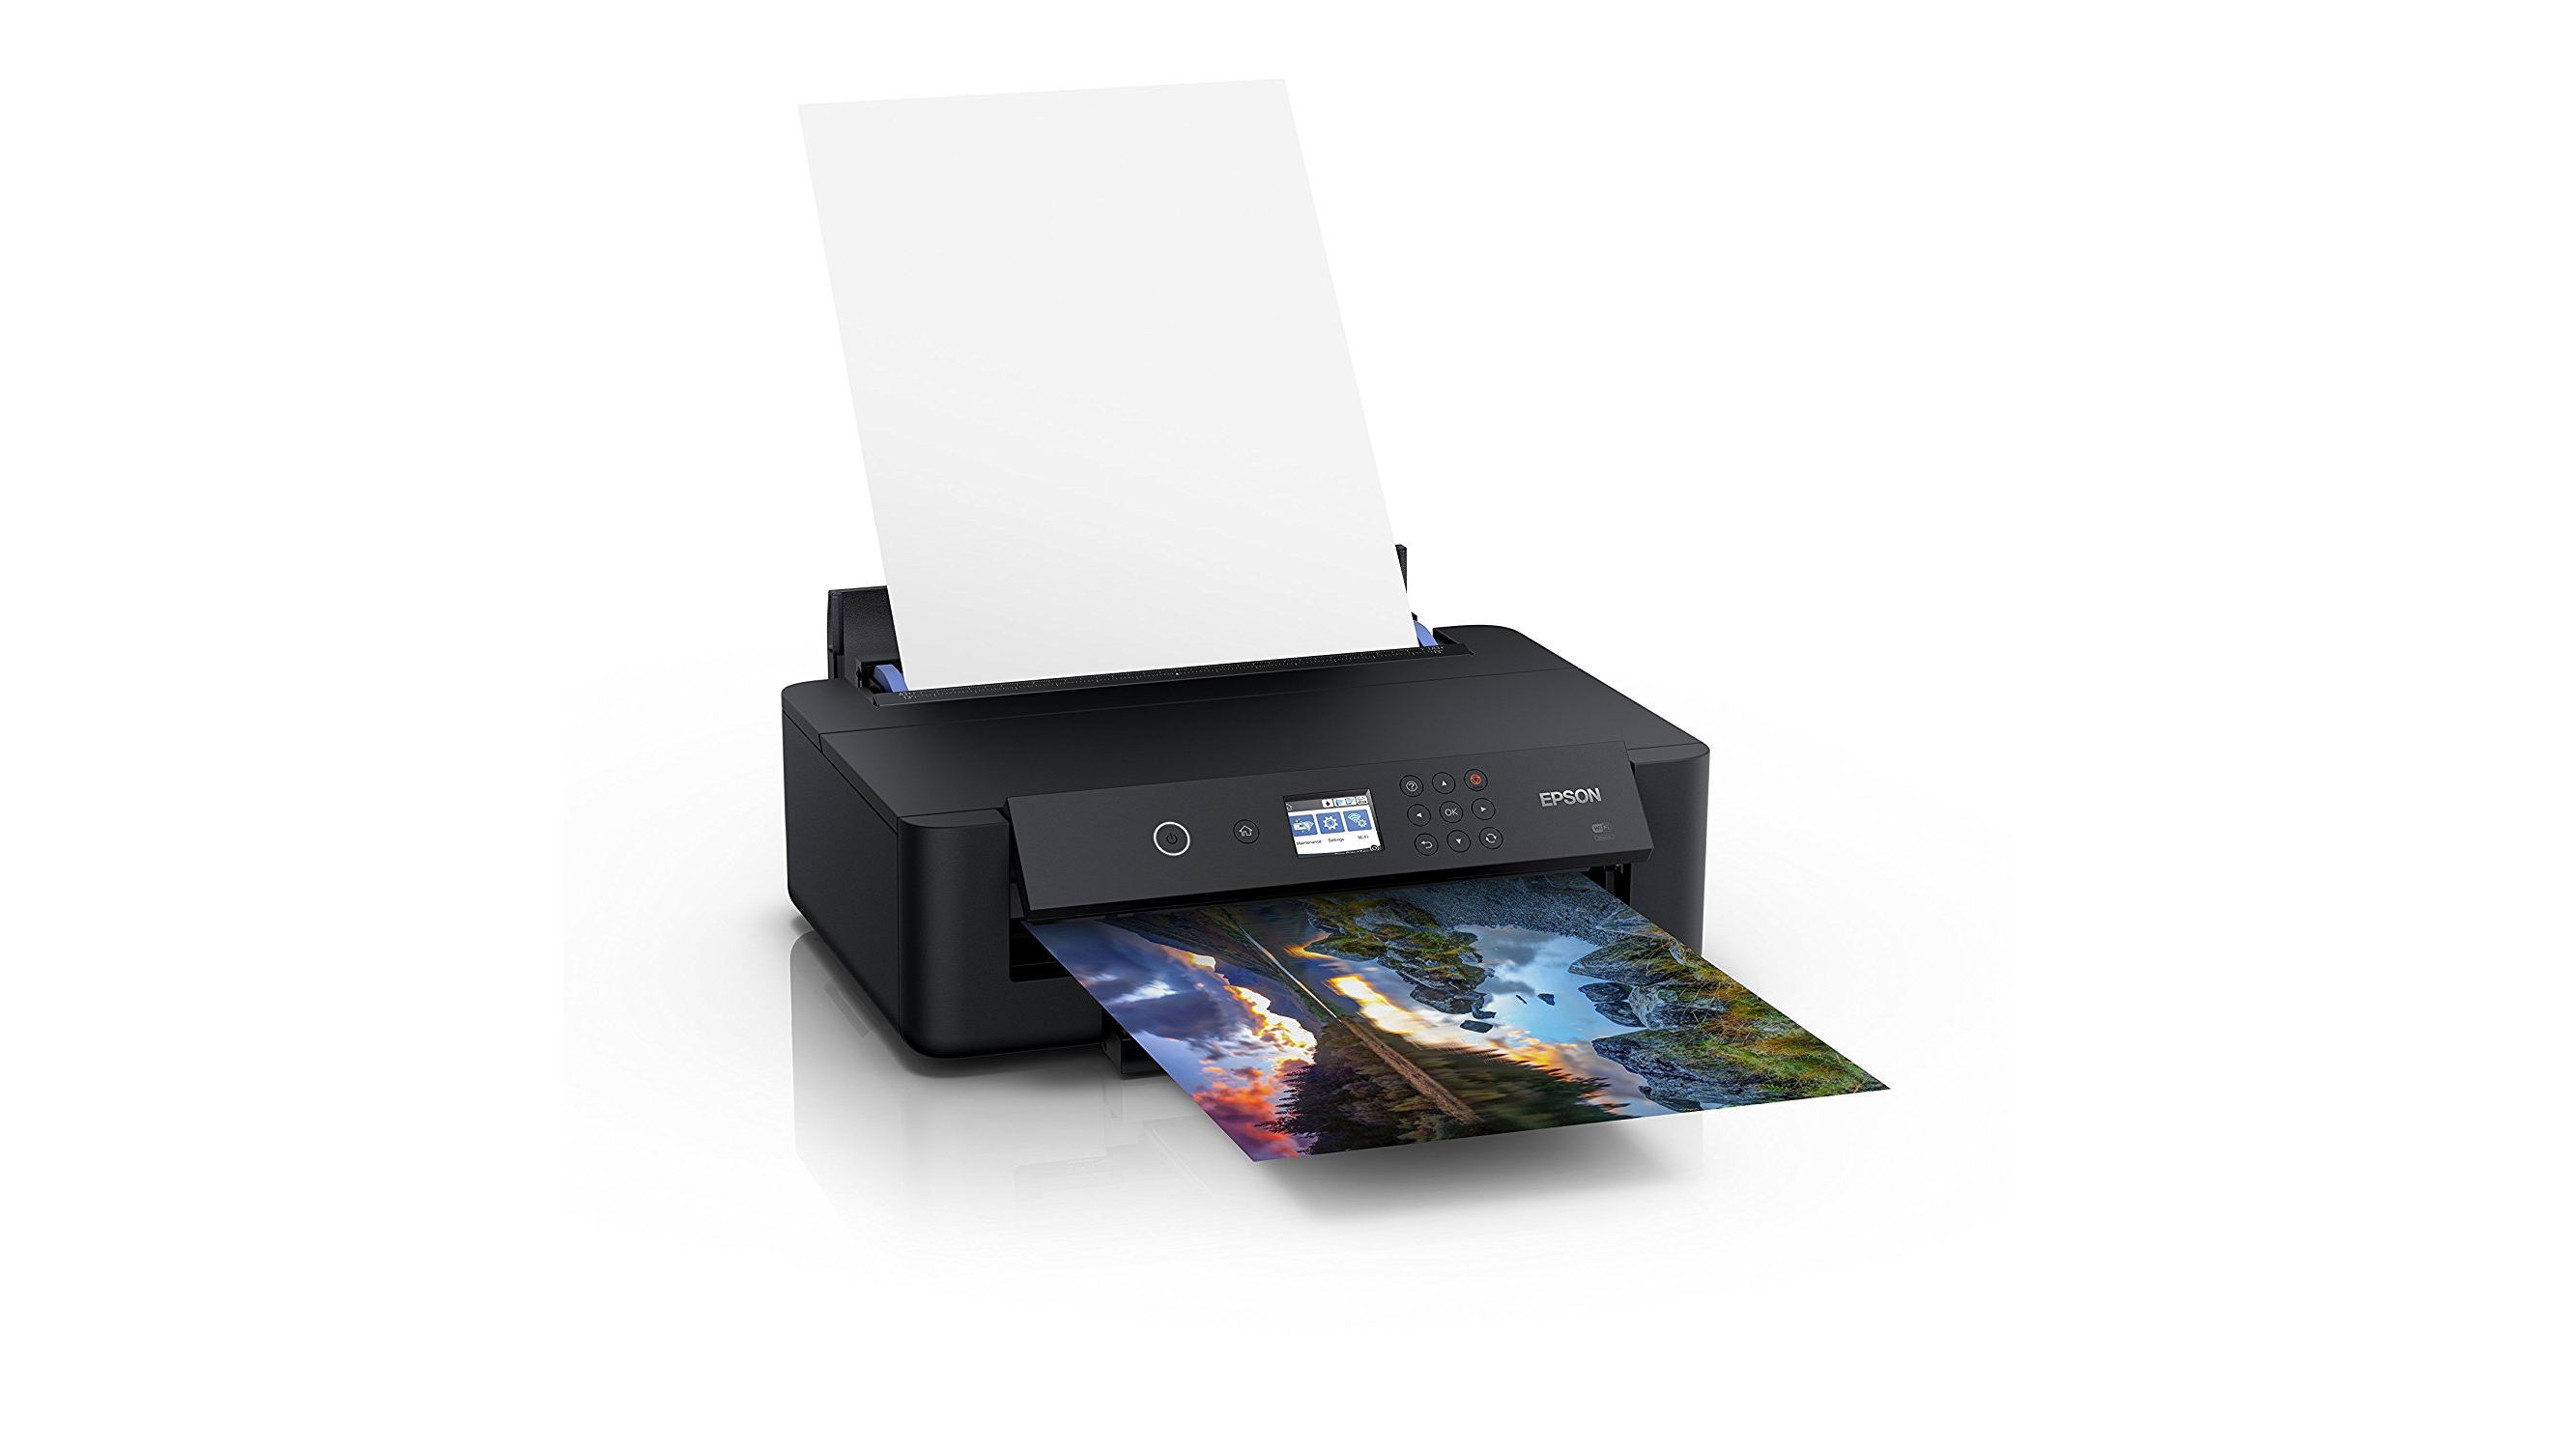 Best printer 2018 the best inkjet and laser printers for office or it might not have the catchiest name but epsons expression photo hd xp 15000 delivers superb photo printing performance for a reasonable price m4hsunfo